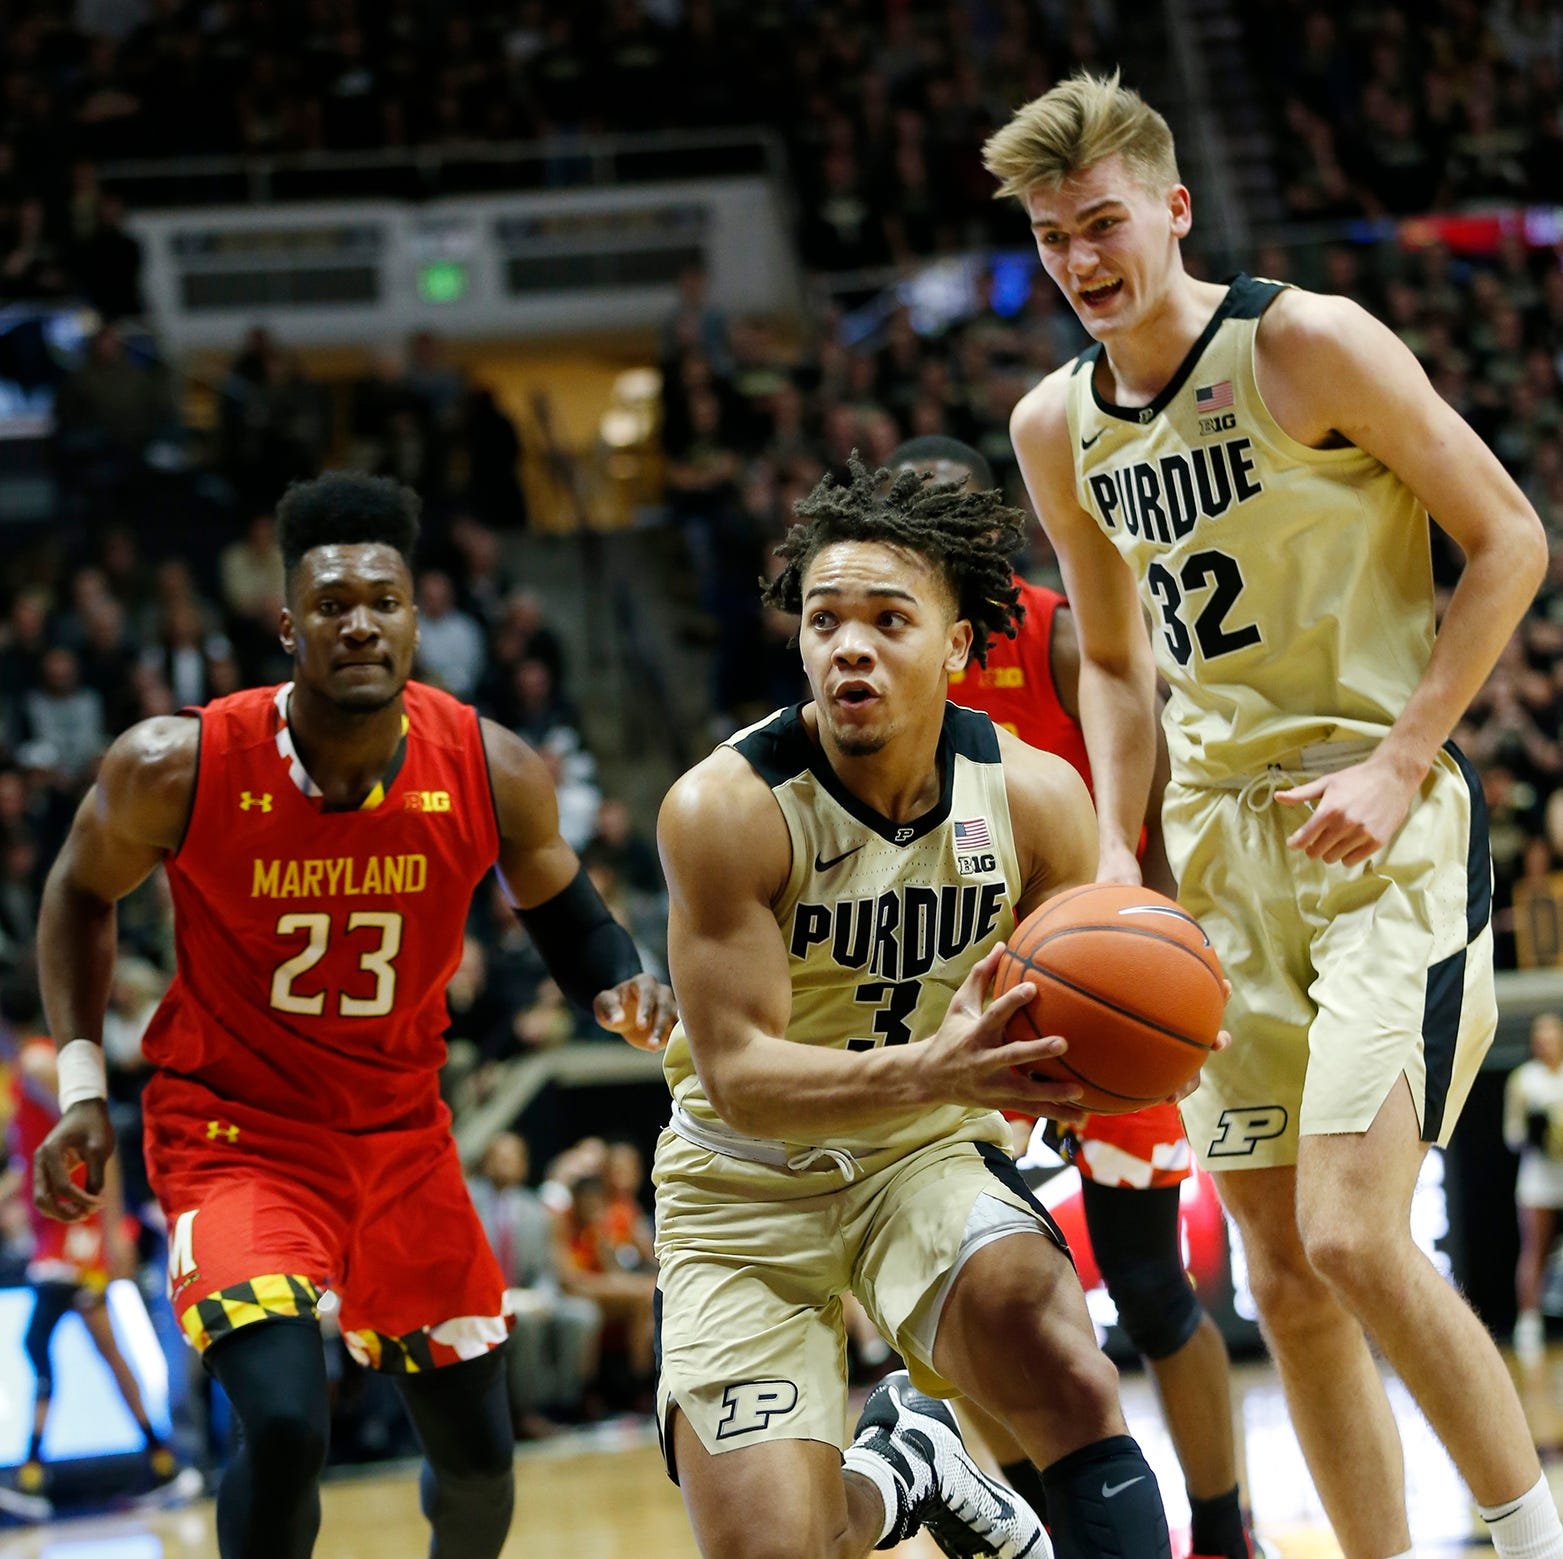 Purdue basketball mailbag | On roster gaps, transition offense and the dreaded bubble